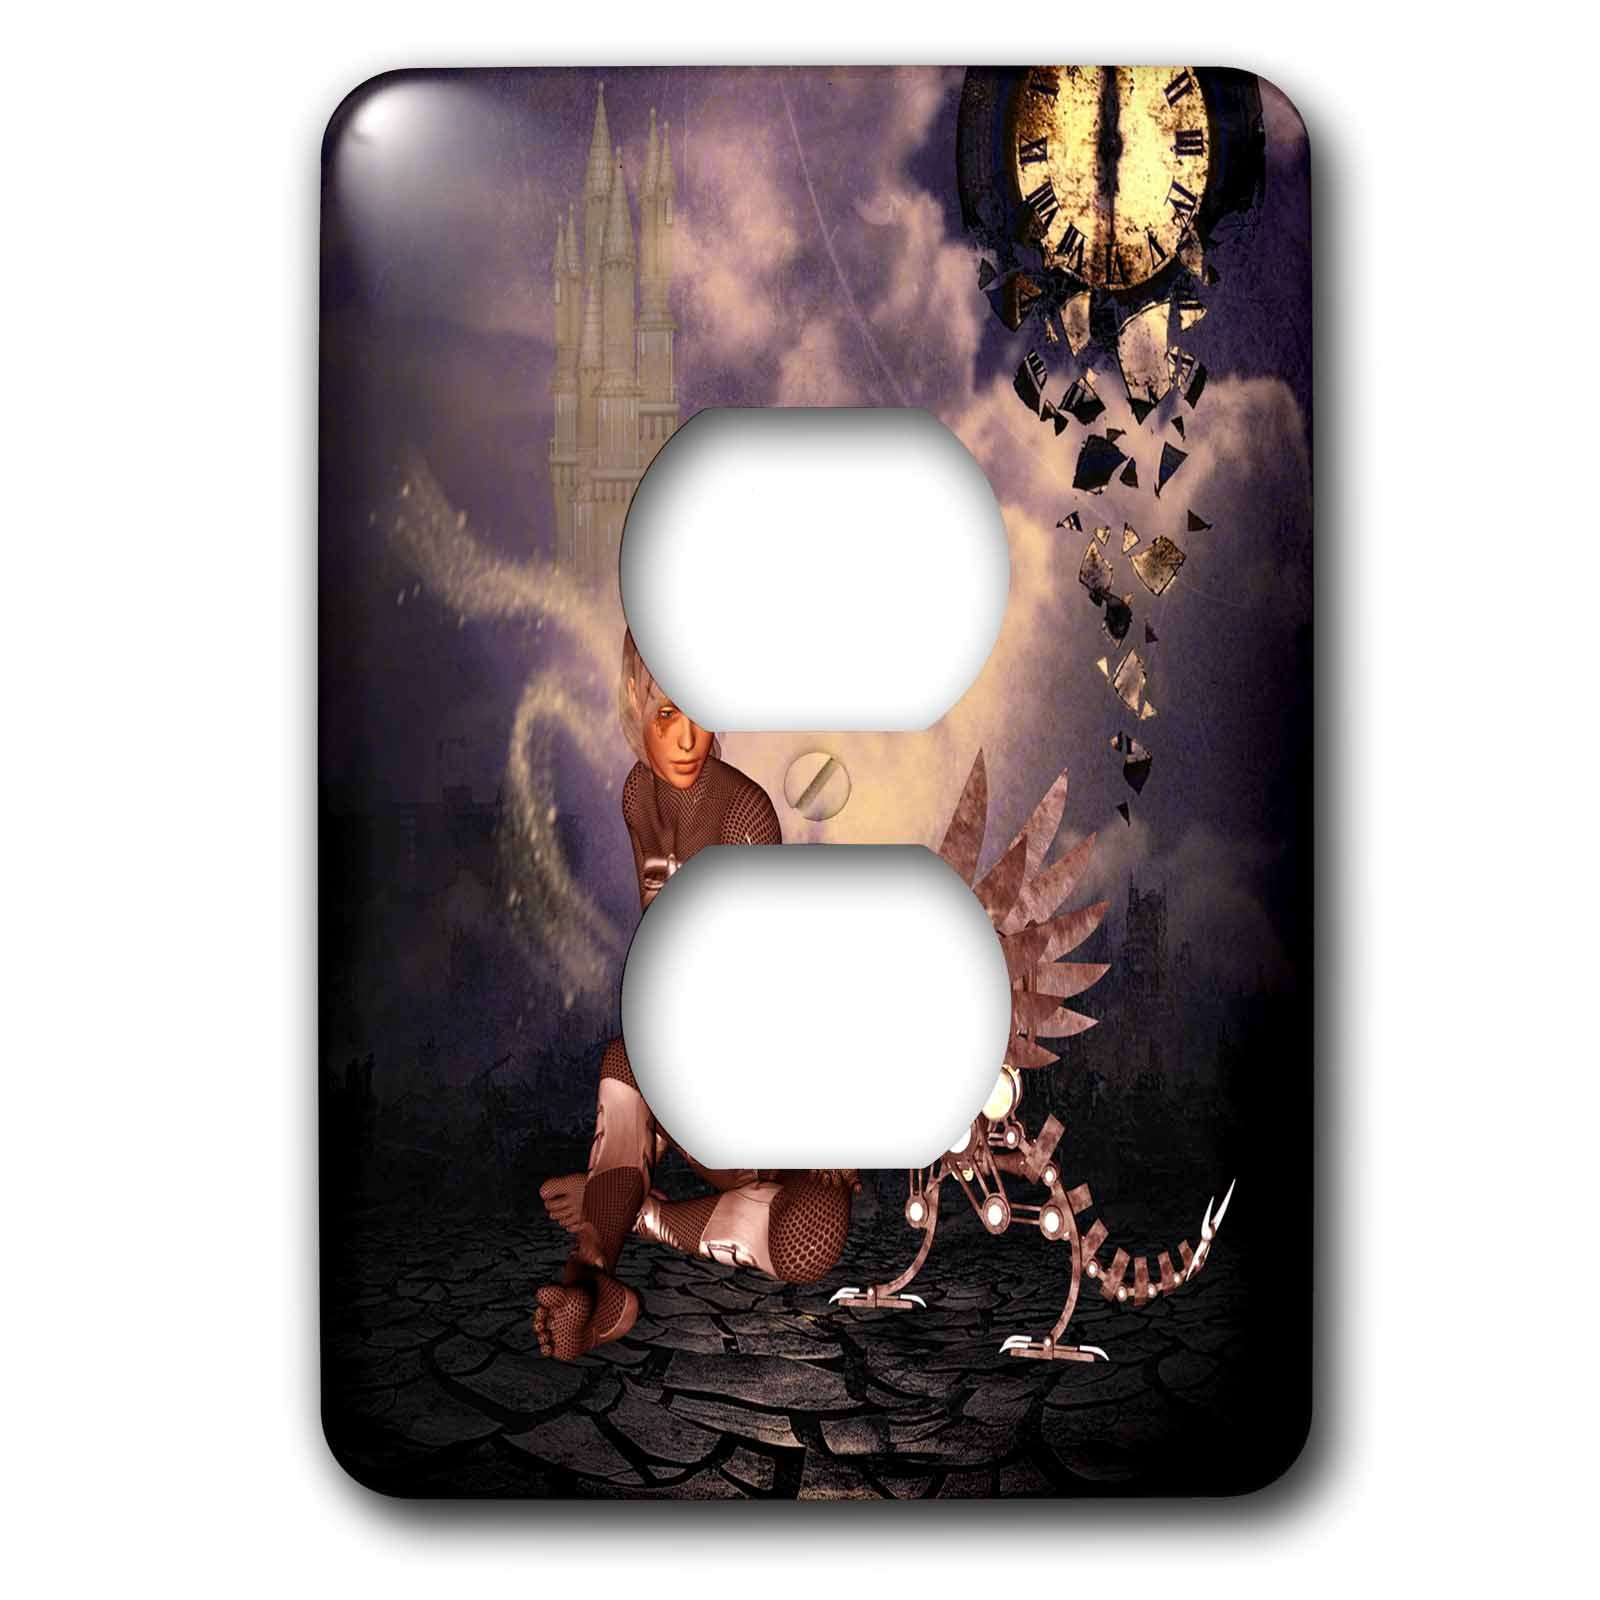 3dRose Heike Köhnen Design Steampunk - Steampunk dragon with steampunk women - Light Switch Covers - 2 plug outlet cover (lsp_264533_6) by 3dRose